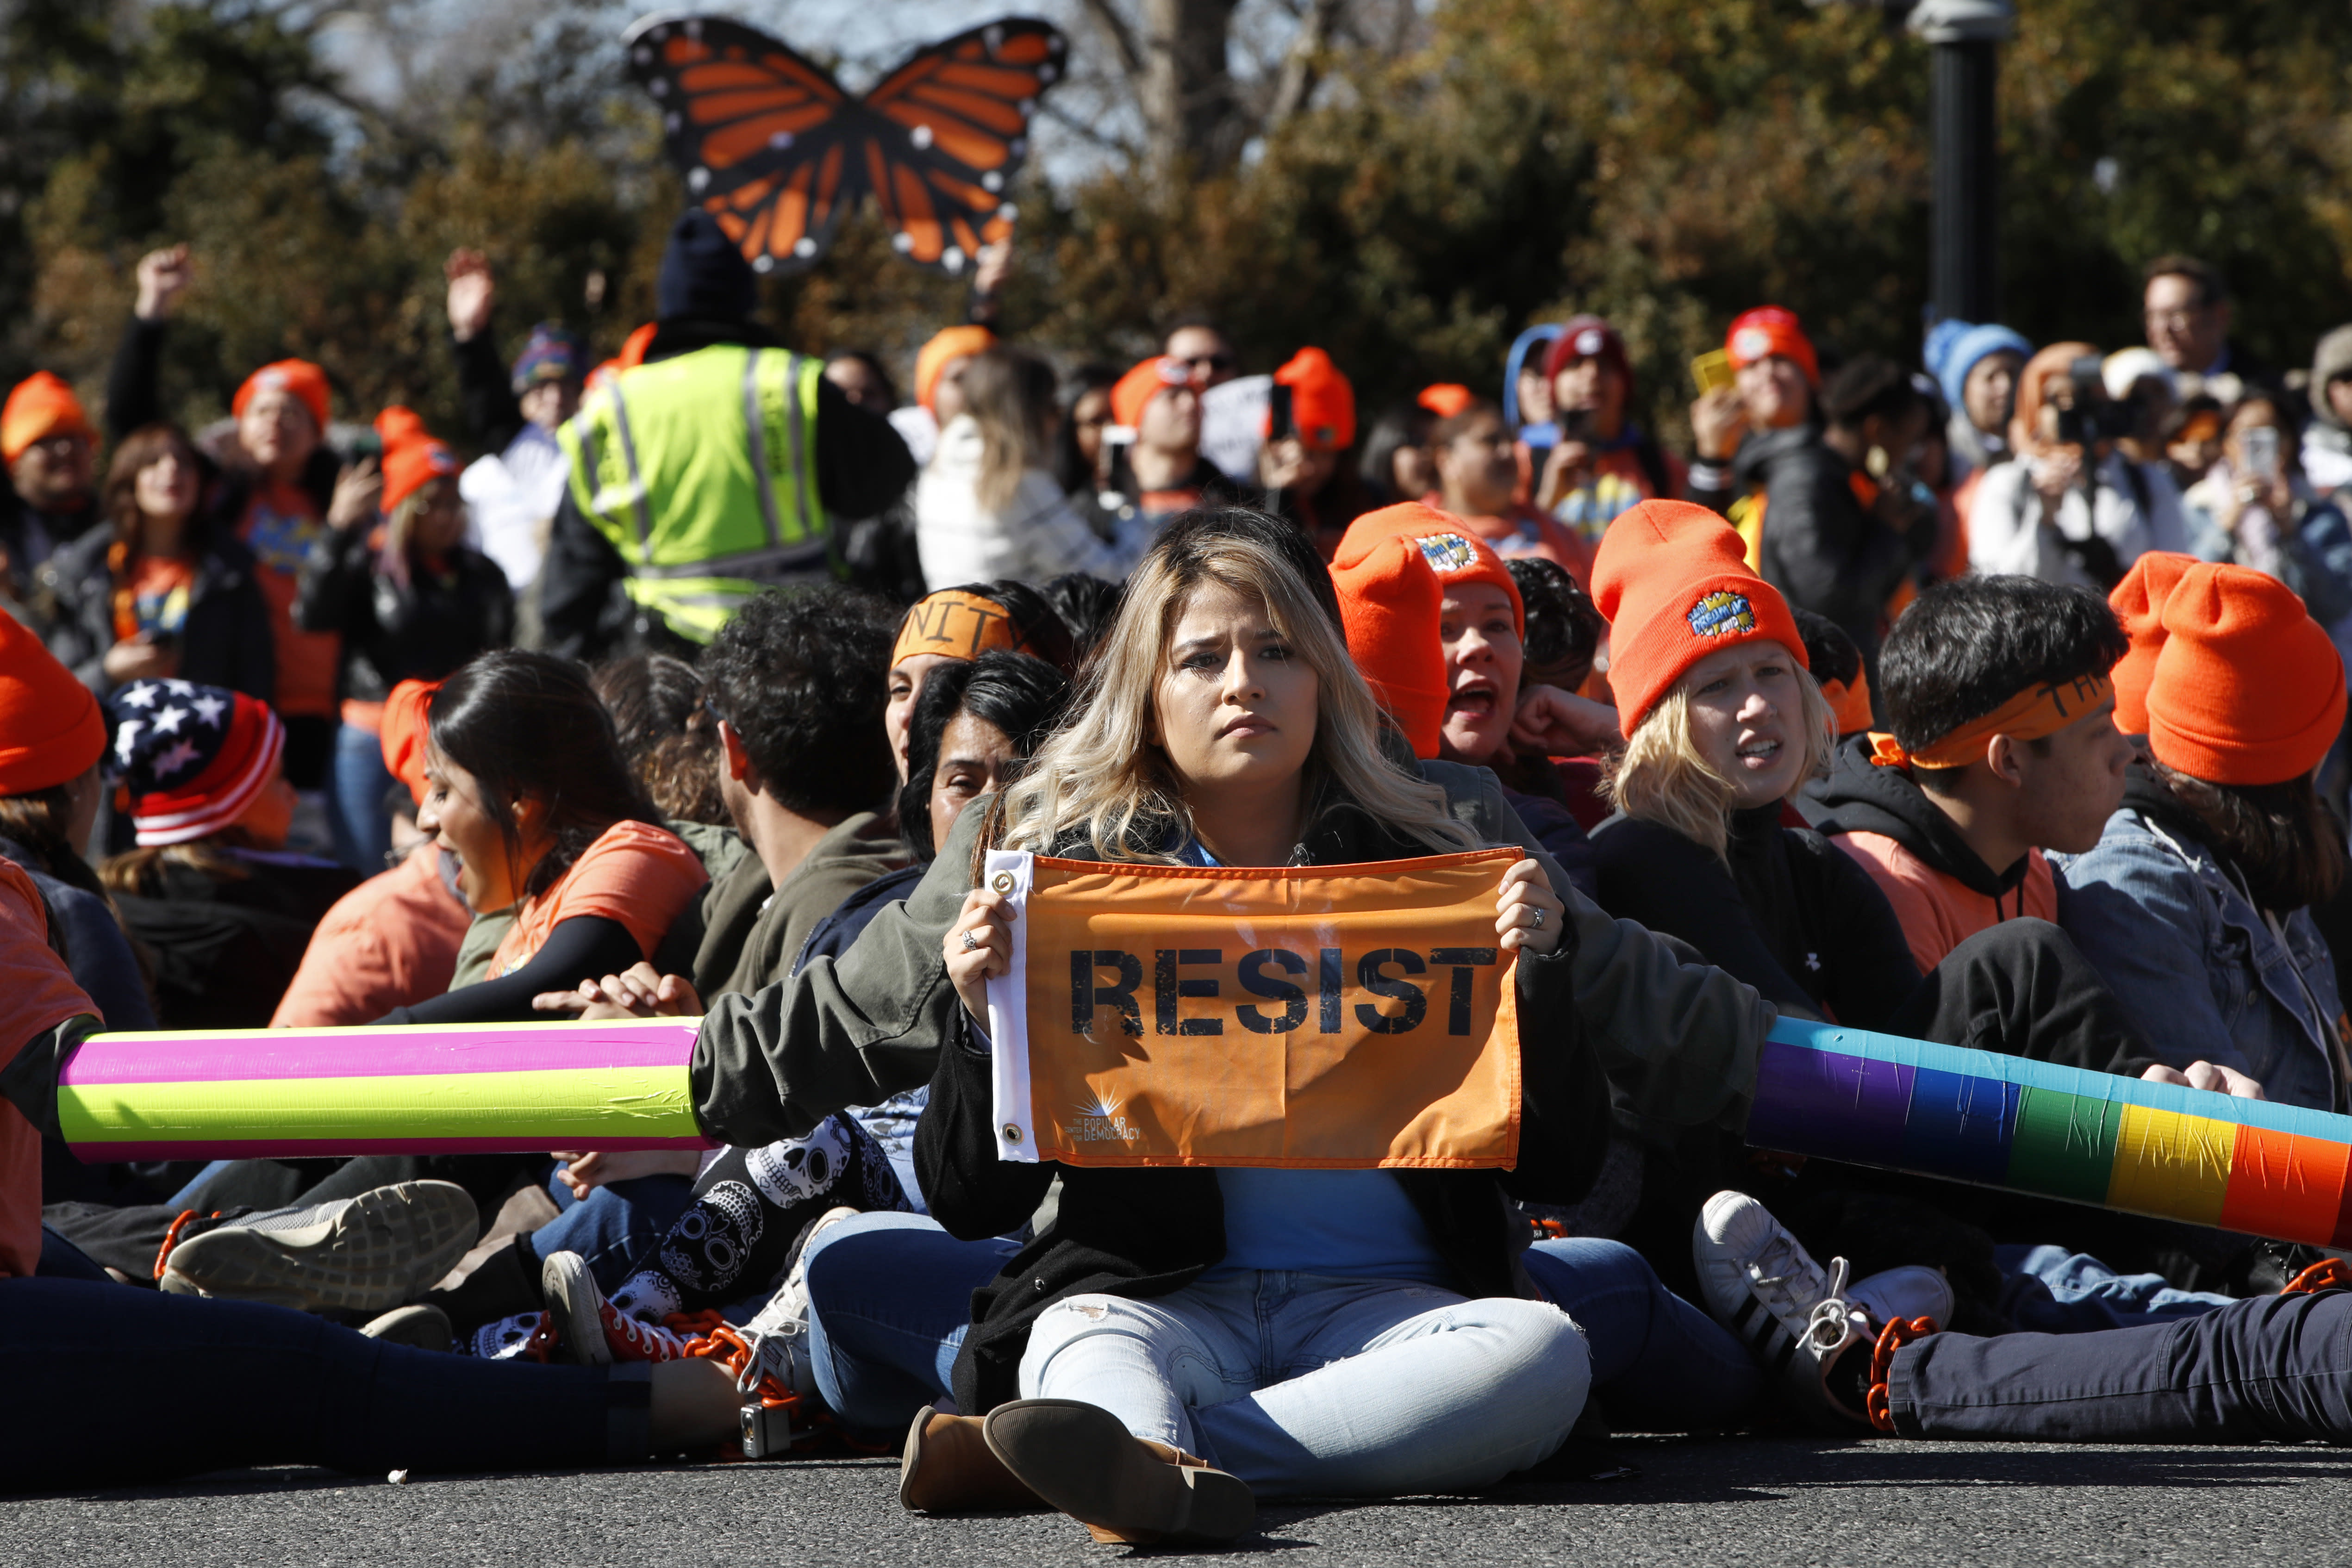 """<p>A woman holds up a sign that says, """"resist,"""" as supporters of the Deferred Action for Childhood Arrivals (DACA) block an intersection near the U.S. Capitol as an act of civil disobedience in support of DACA recipients, Monday, March 5, 2018, on Capitol Hill in Washington. (Photo: Jacquelyn Martin/AP) </p>"""